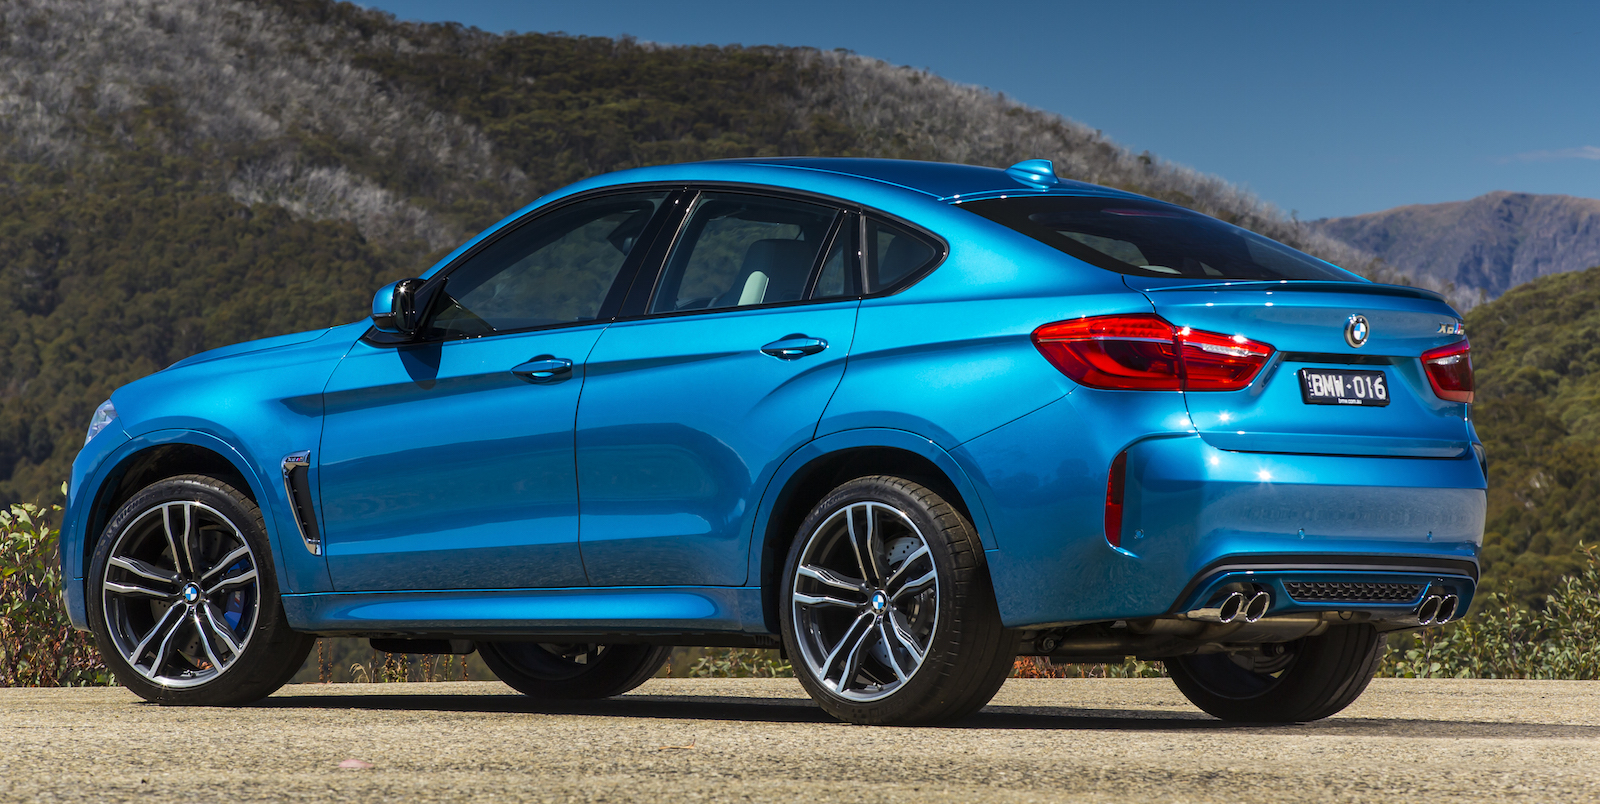 Bmw X6 Specs 2019 Bmw X6 Review Rendered Price Specs